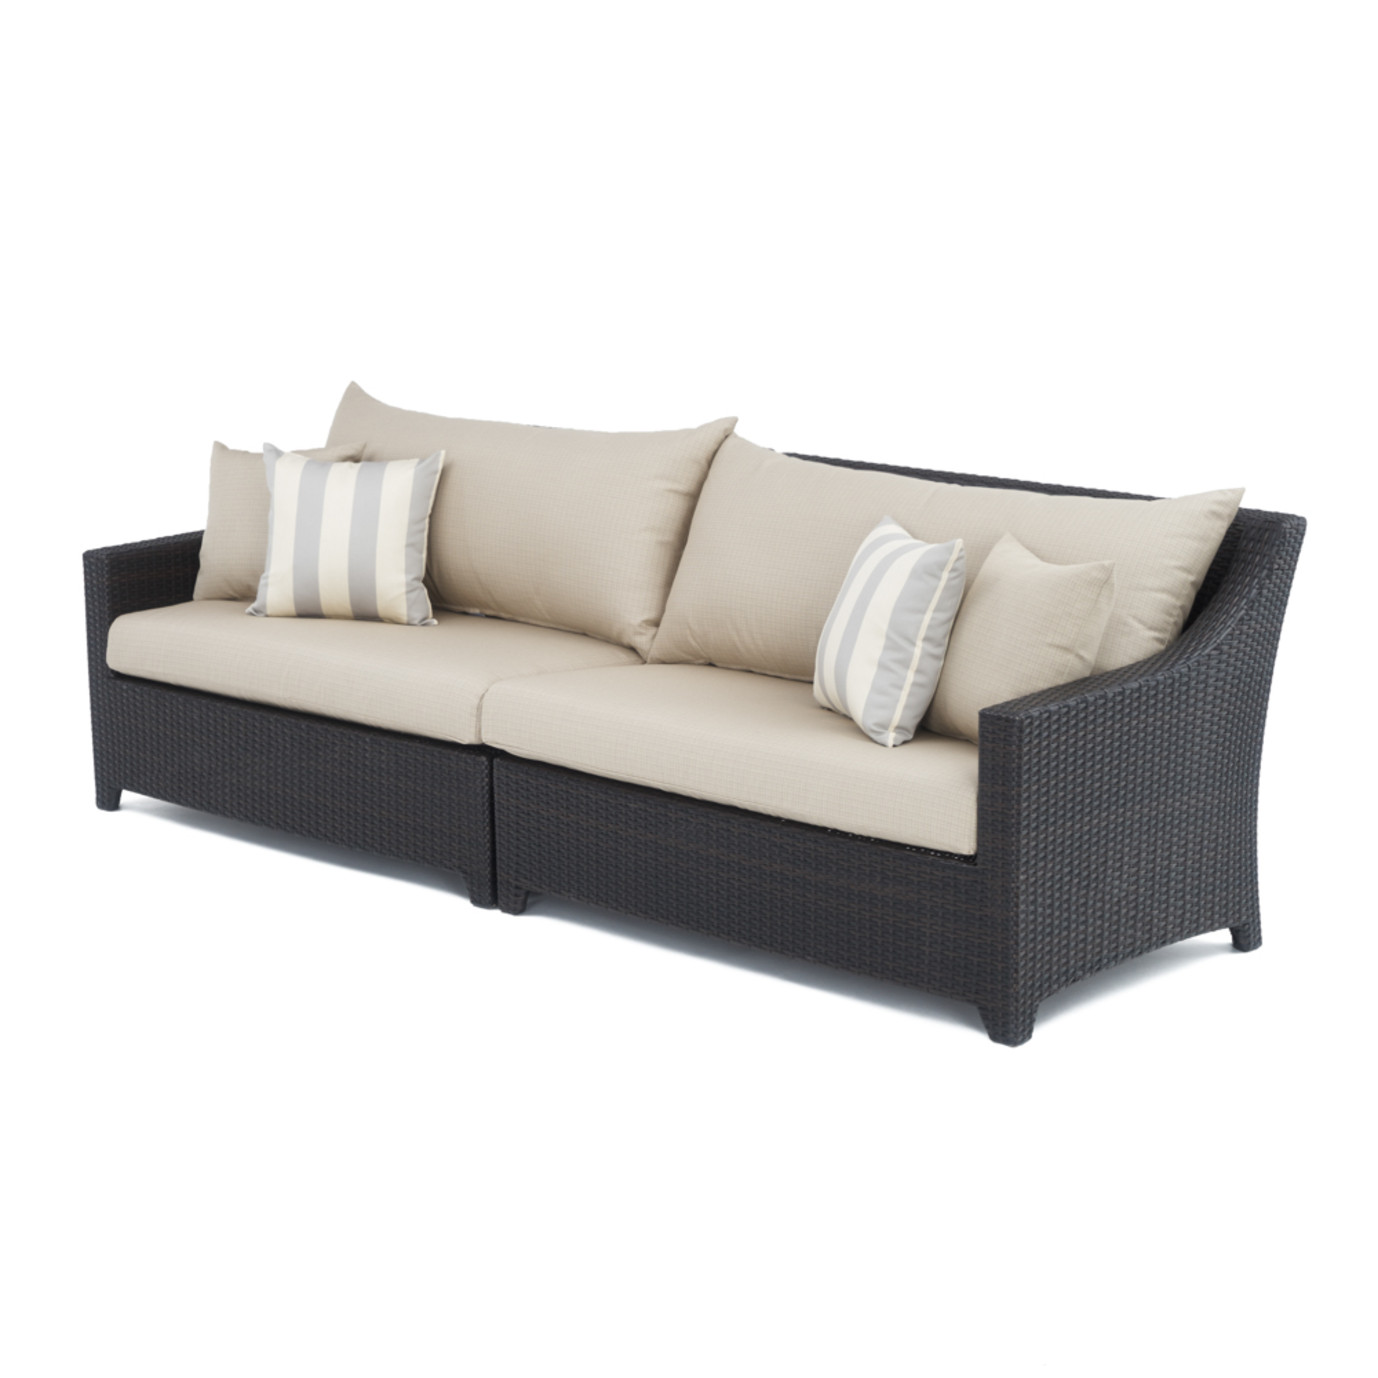 Deco Sofa Slate Grey Rst Brands